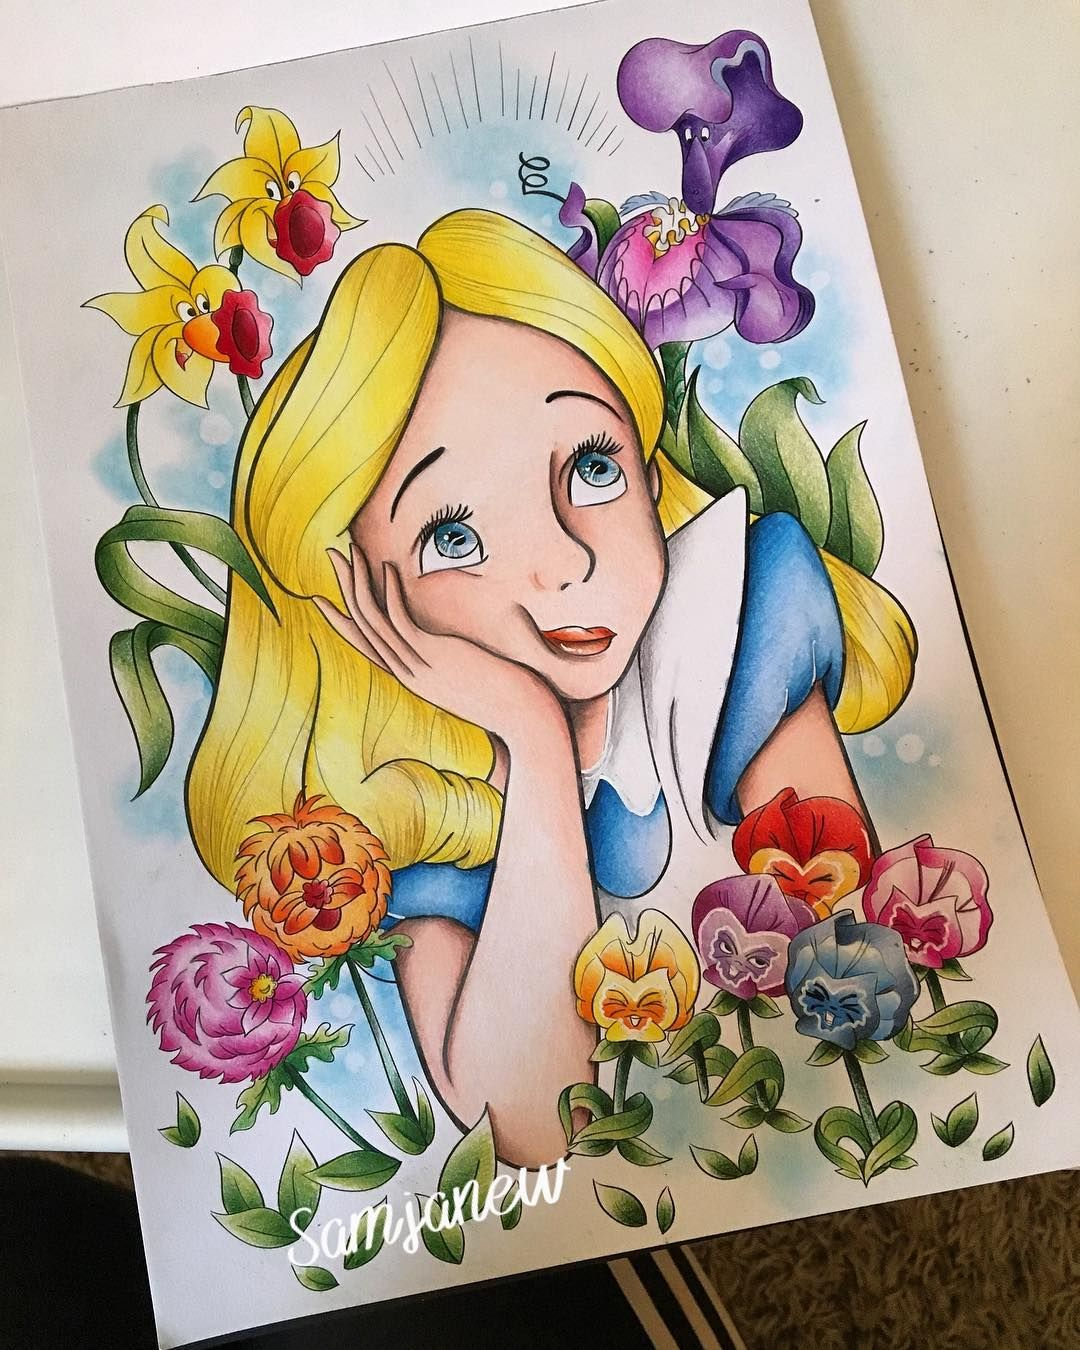 I wanted this nice and bright like the original Alice and exact to